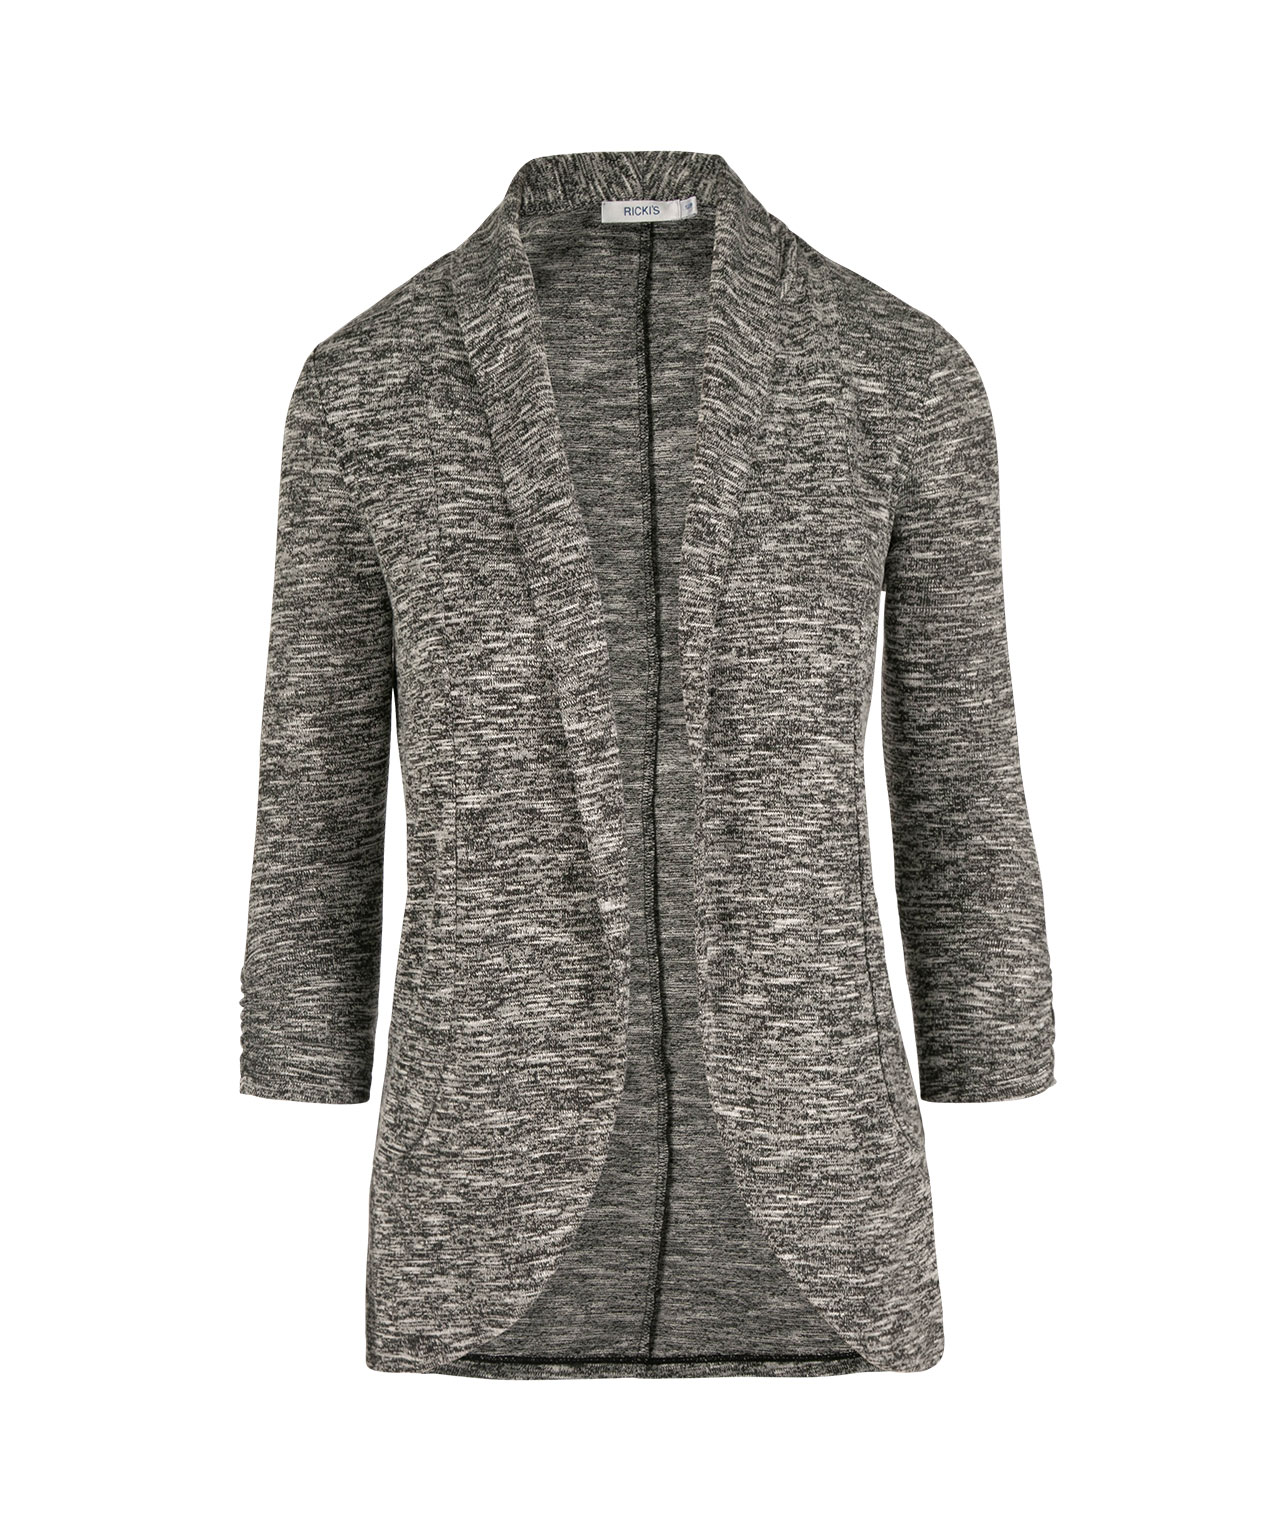 Shawl Collar Cardigan, Black/White, hi-res